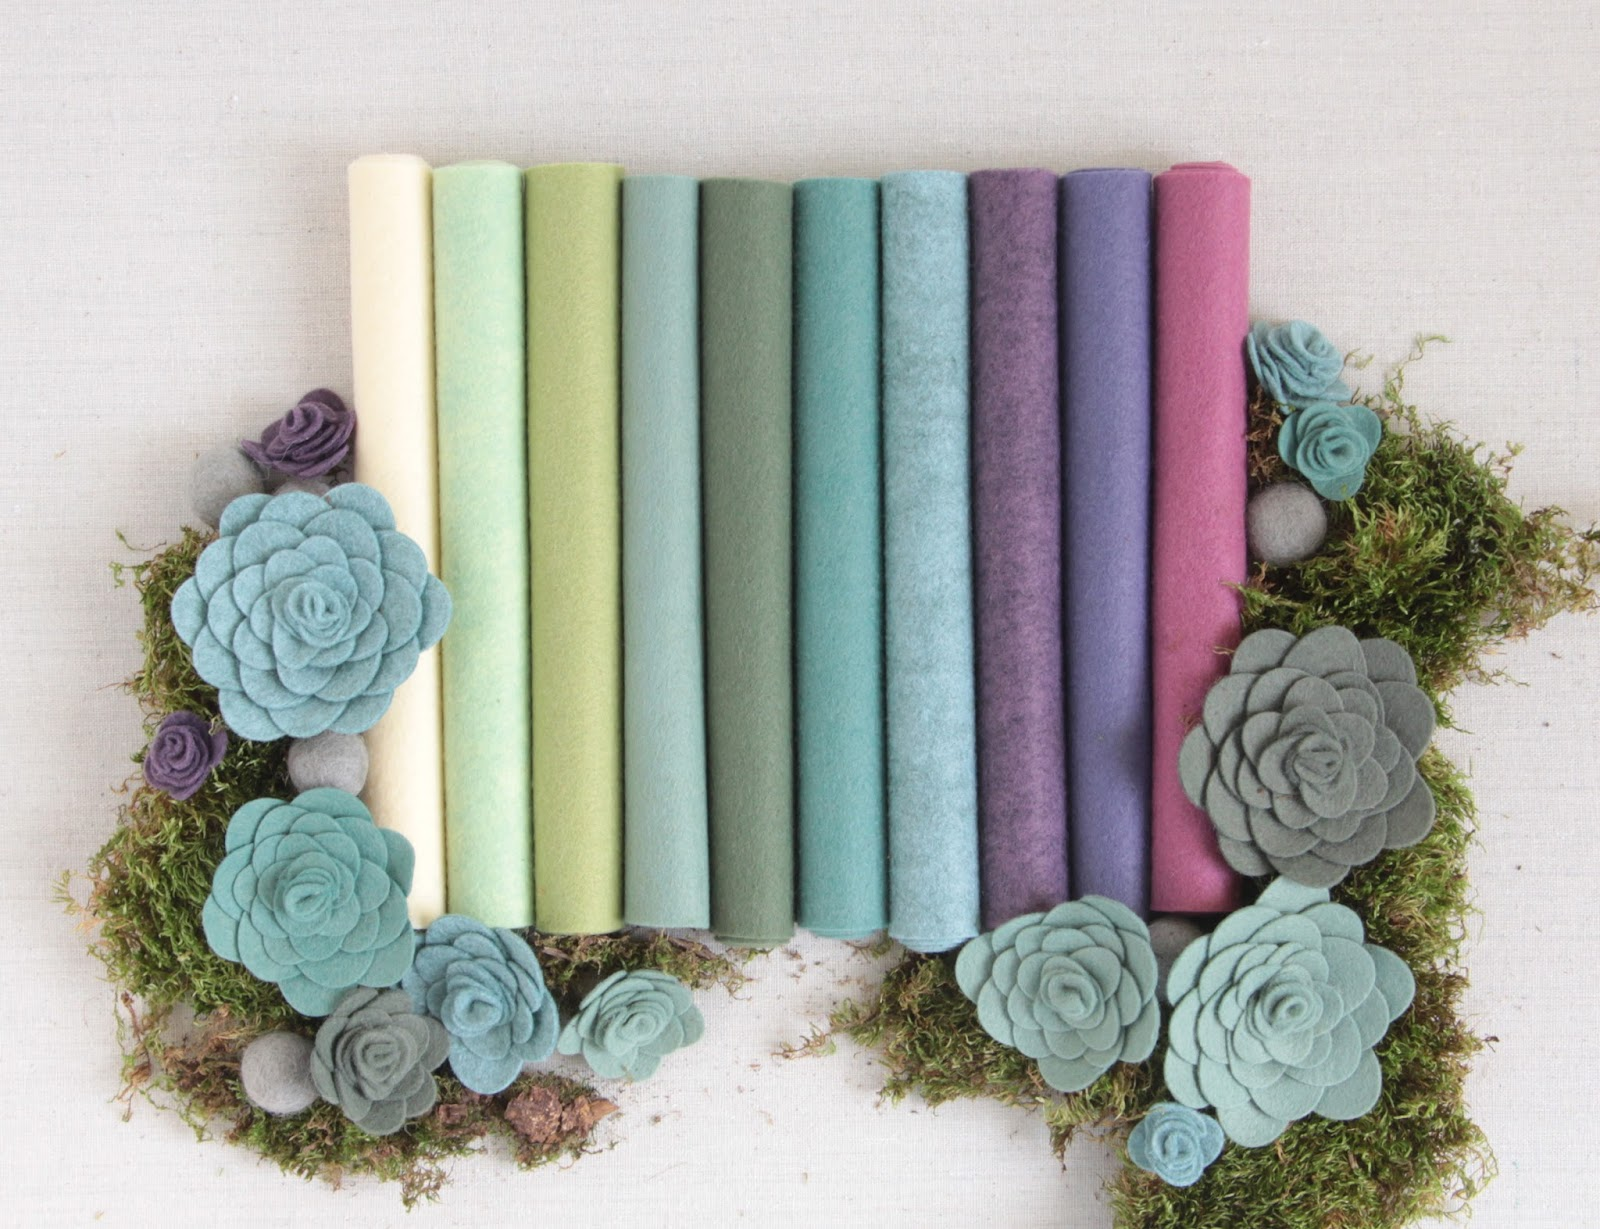 benzie felt succulent collection